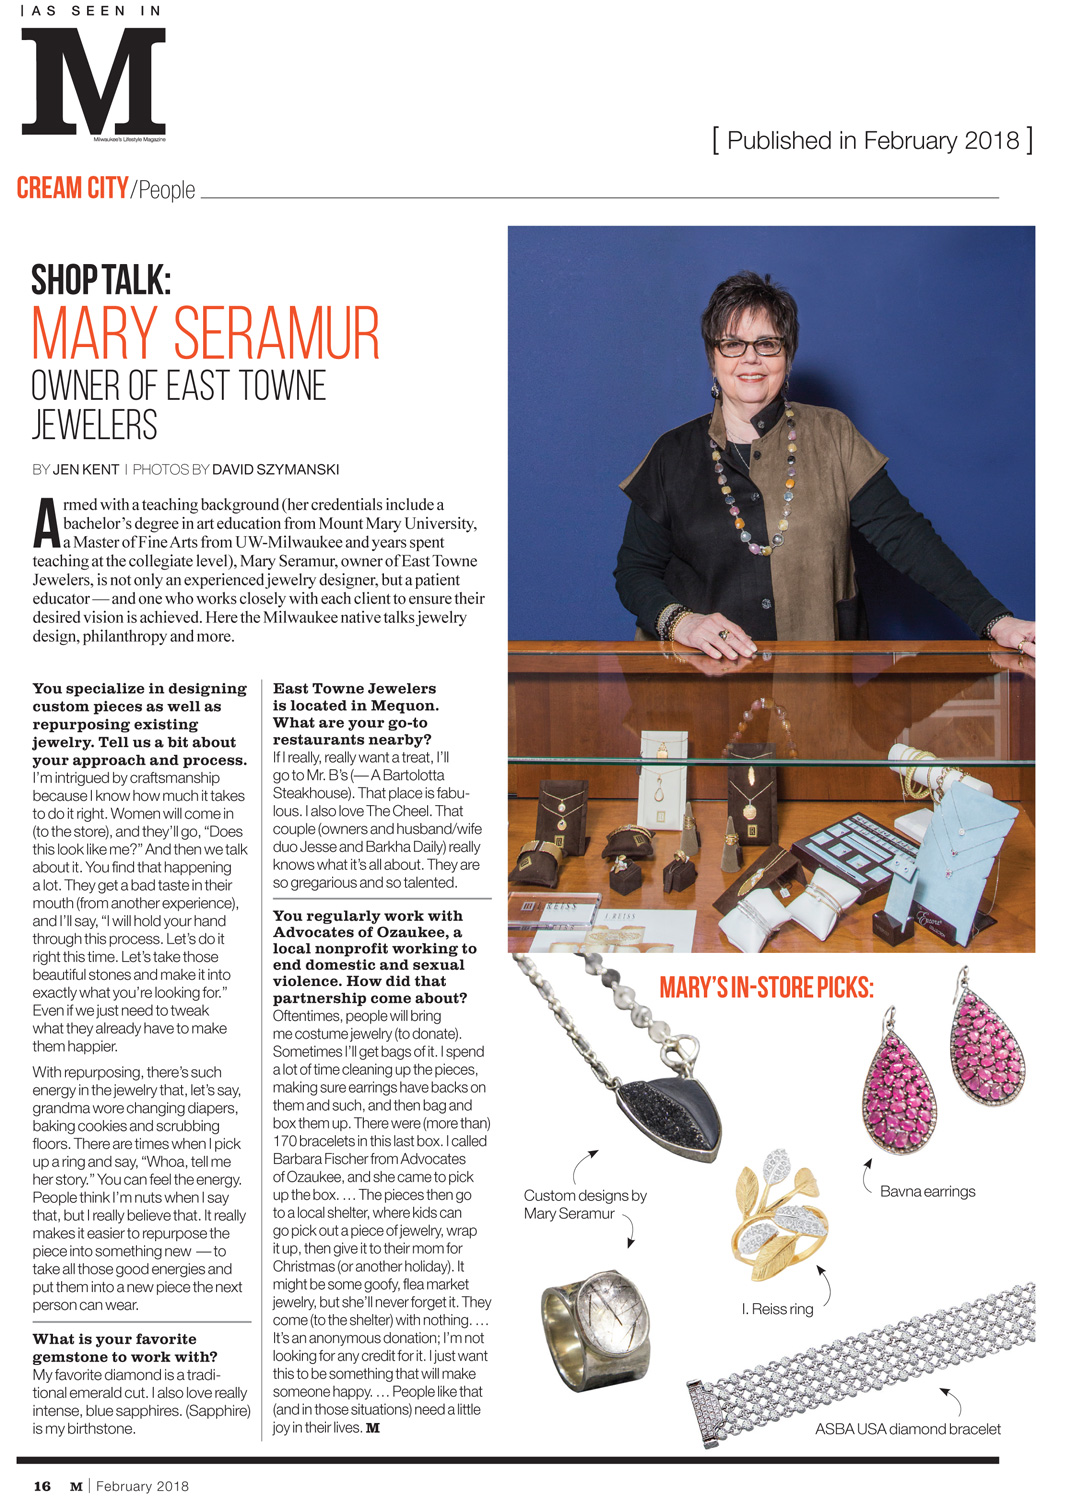 East Towne Jewelers featured in M Magazine